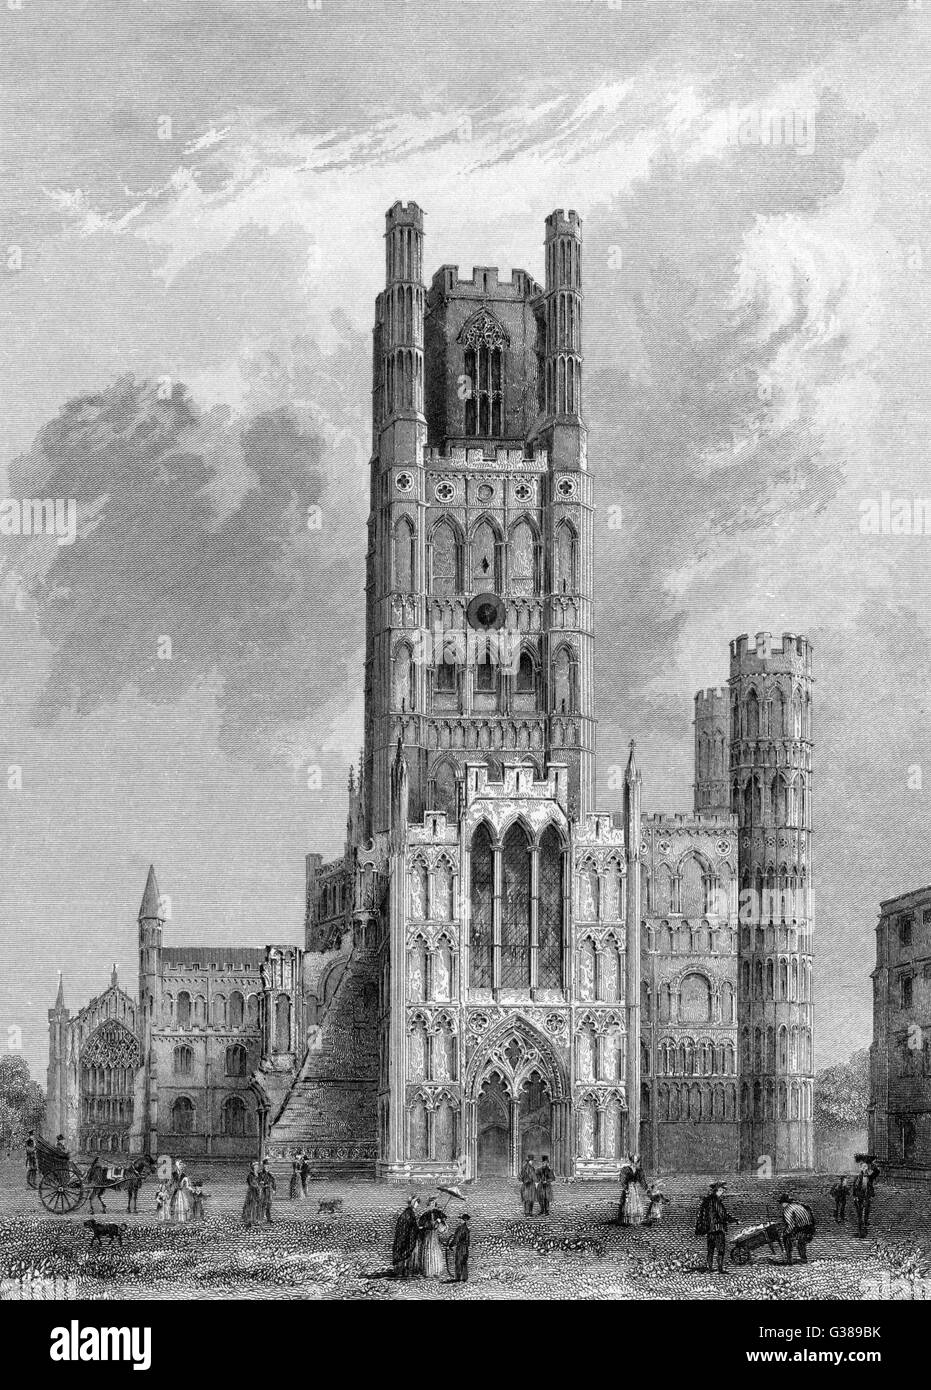 The front of Ely Cathedral.          Date: 1836 - Stock Image